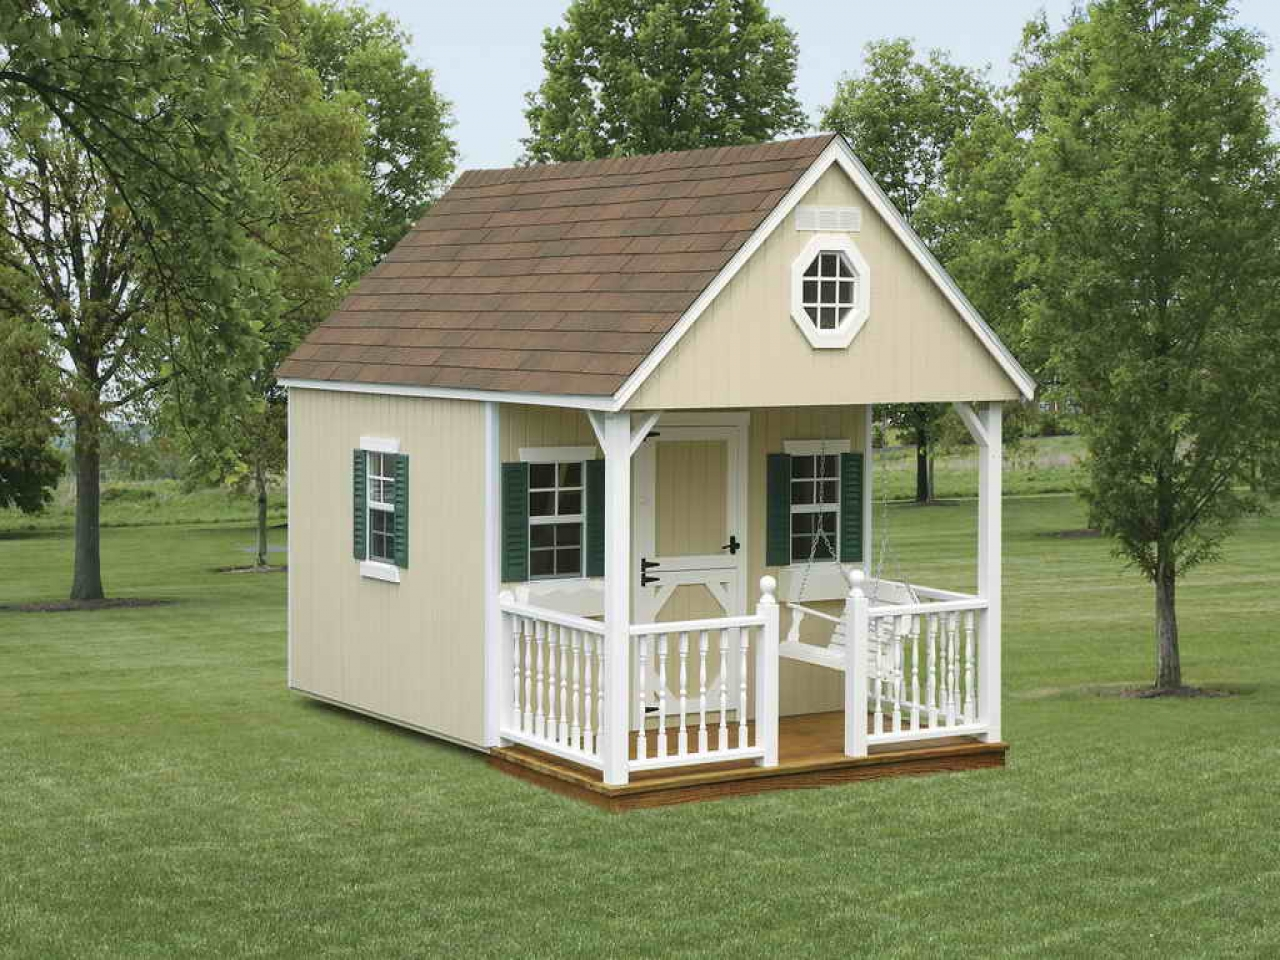 Small backyard cabin plans rustic cabin plans backyard for Small backyard cabin